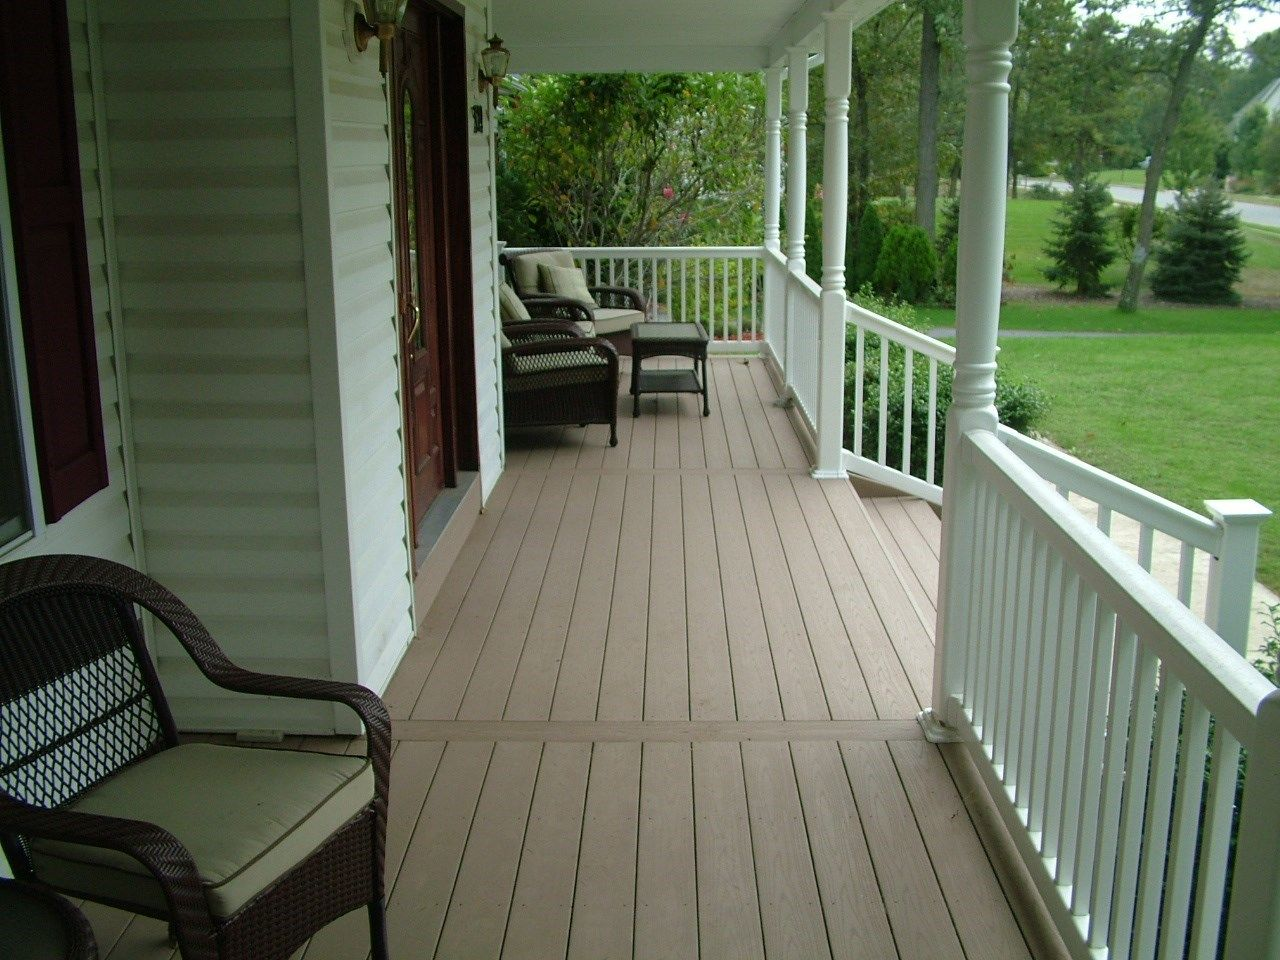 Remolded Porch deck in Plumstead NJ. - Picture 3392